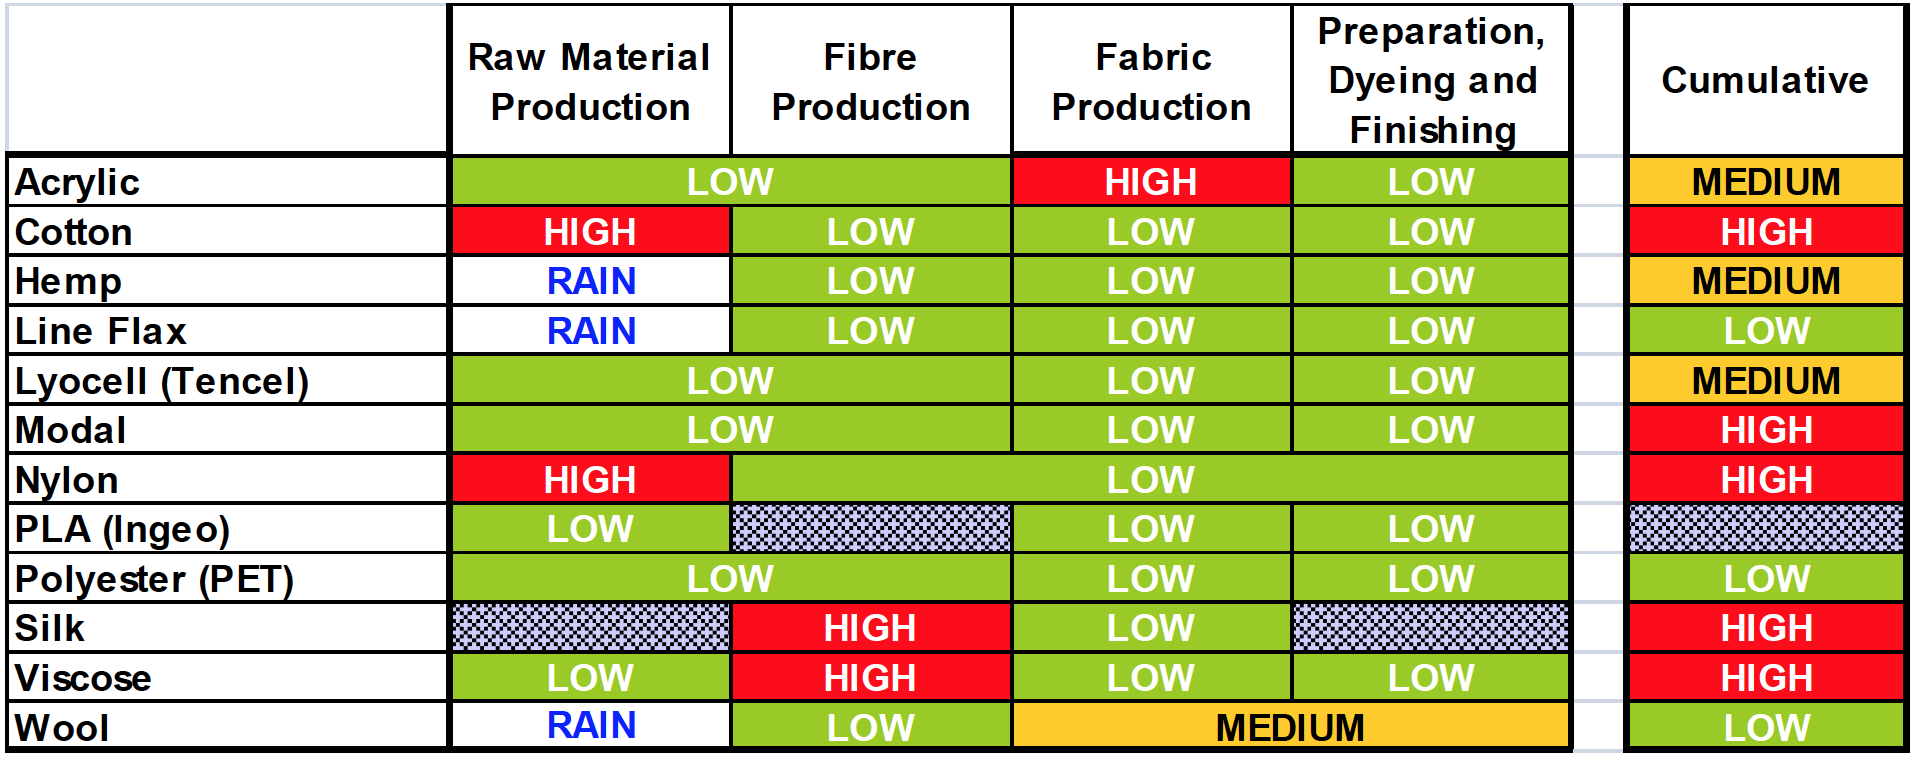 Energy use comparing fiber processing and production. [5]